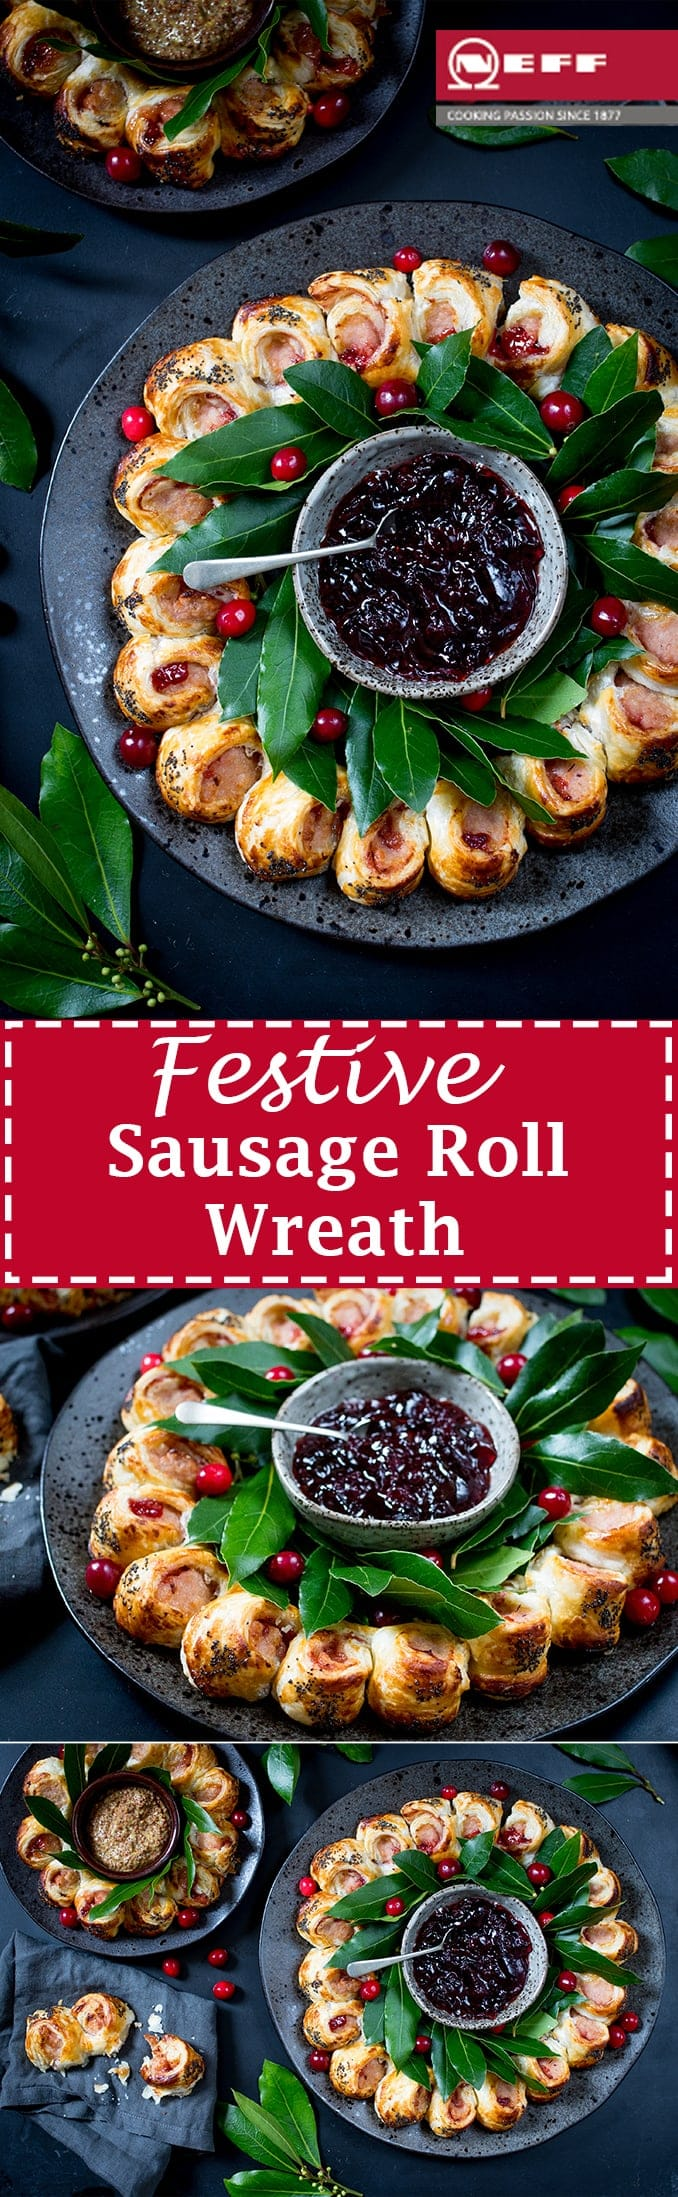 This easy festive sausage roll wreath looks amazing on any party table. Topped with a honey mustard gaze and poppy seeds! #PartyFood #Recipe #SausageRoll